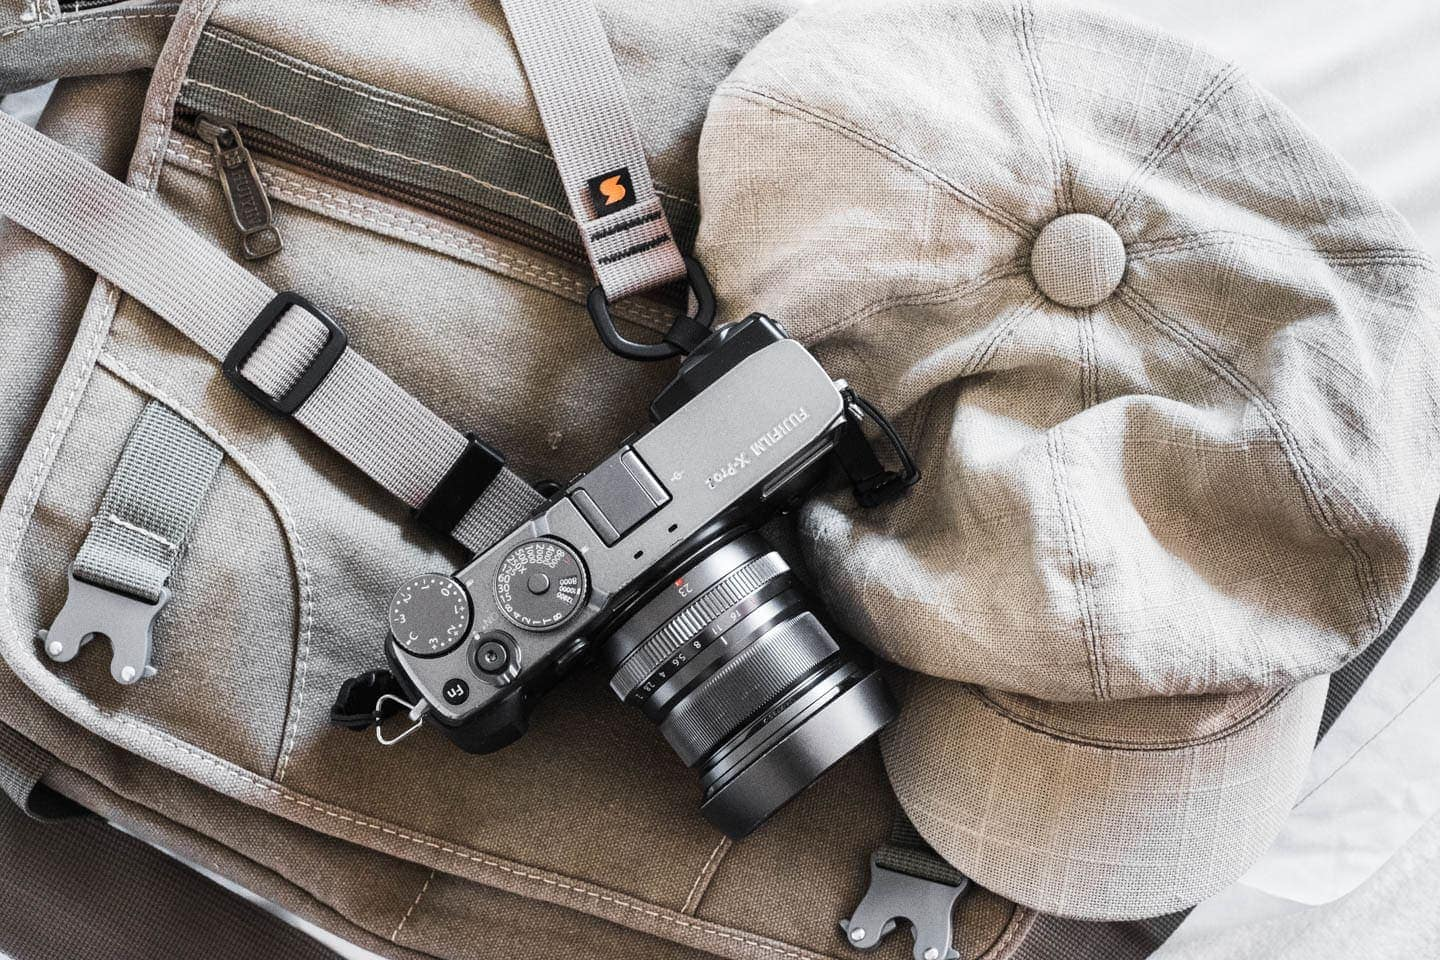 Charlene Winfred's Camera Strap on Her Fuji X-Pro2